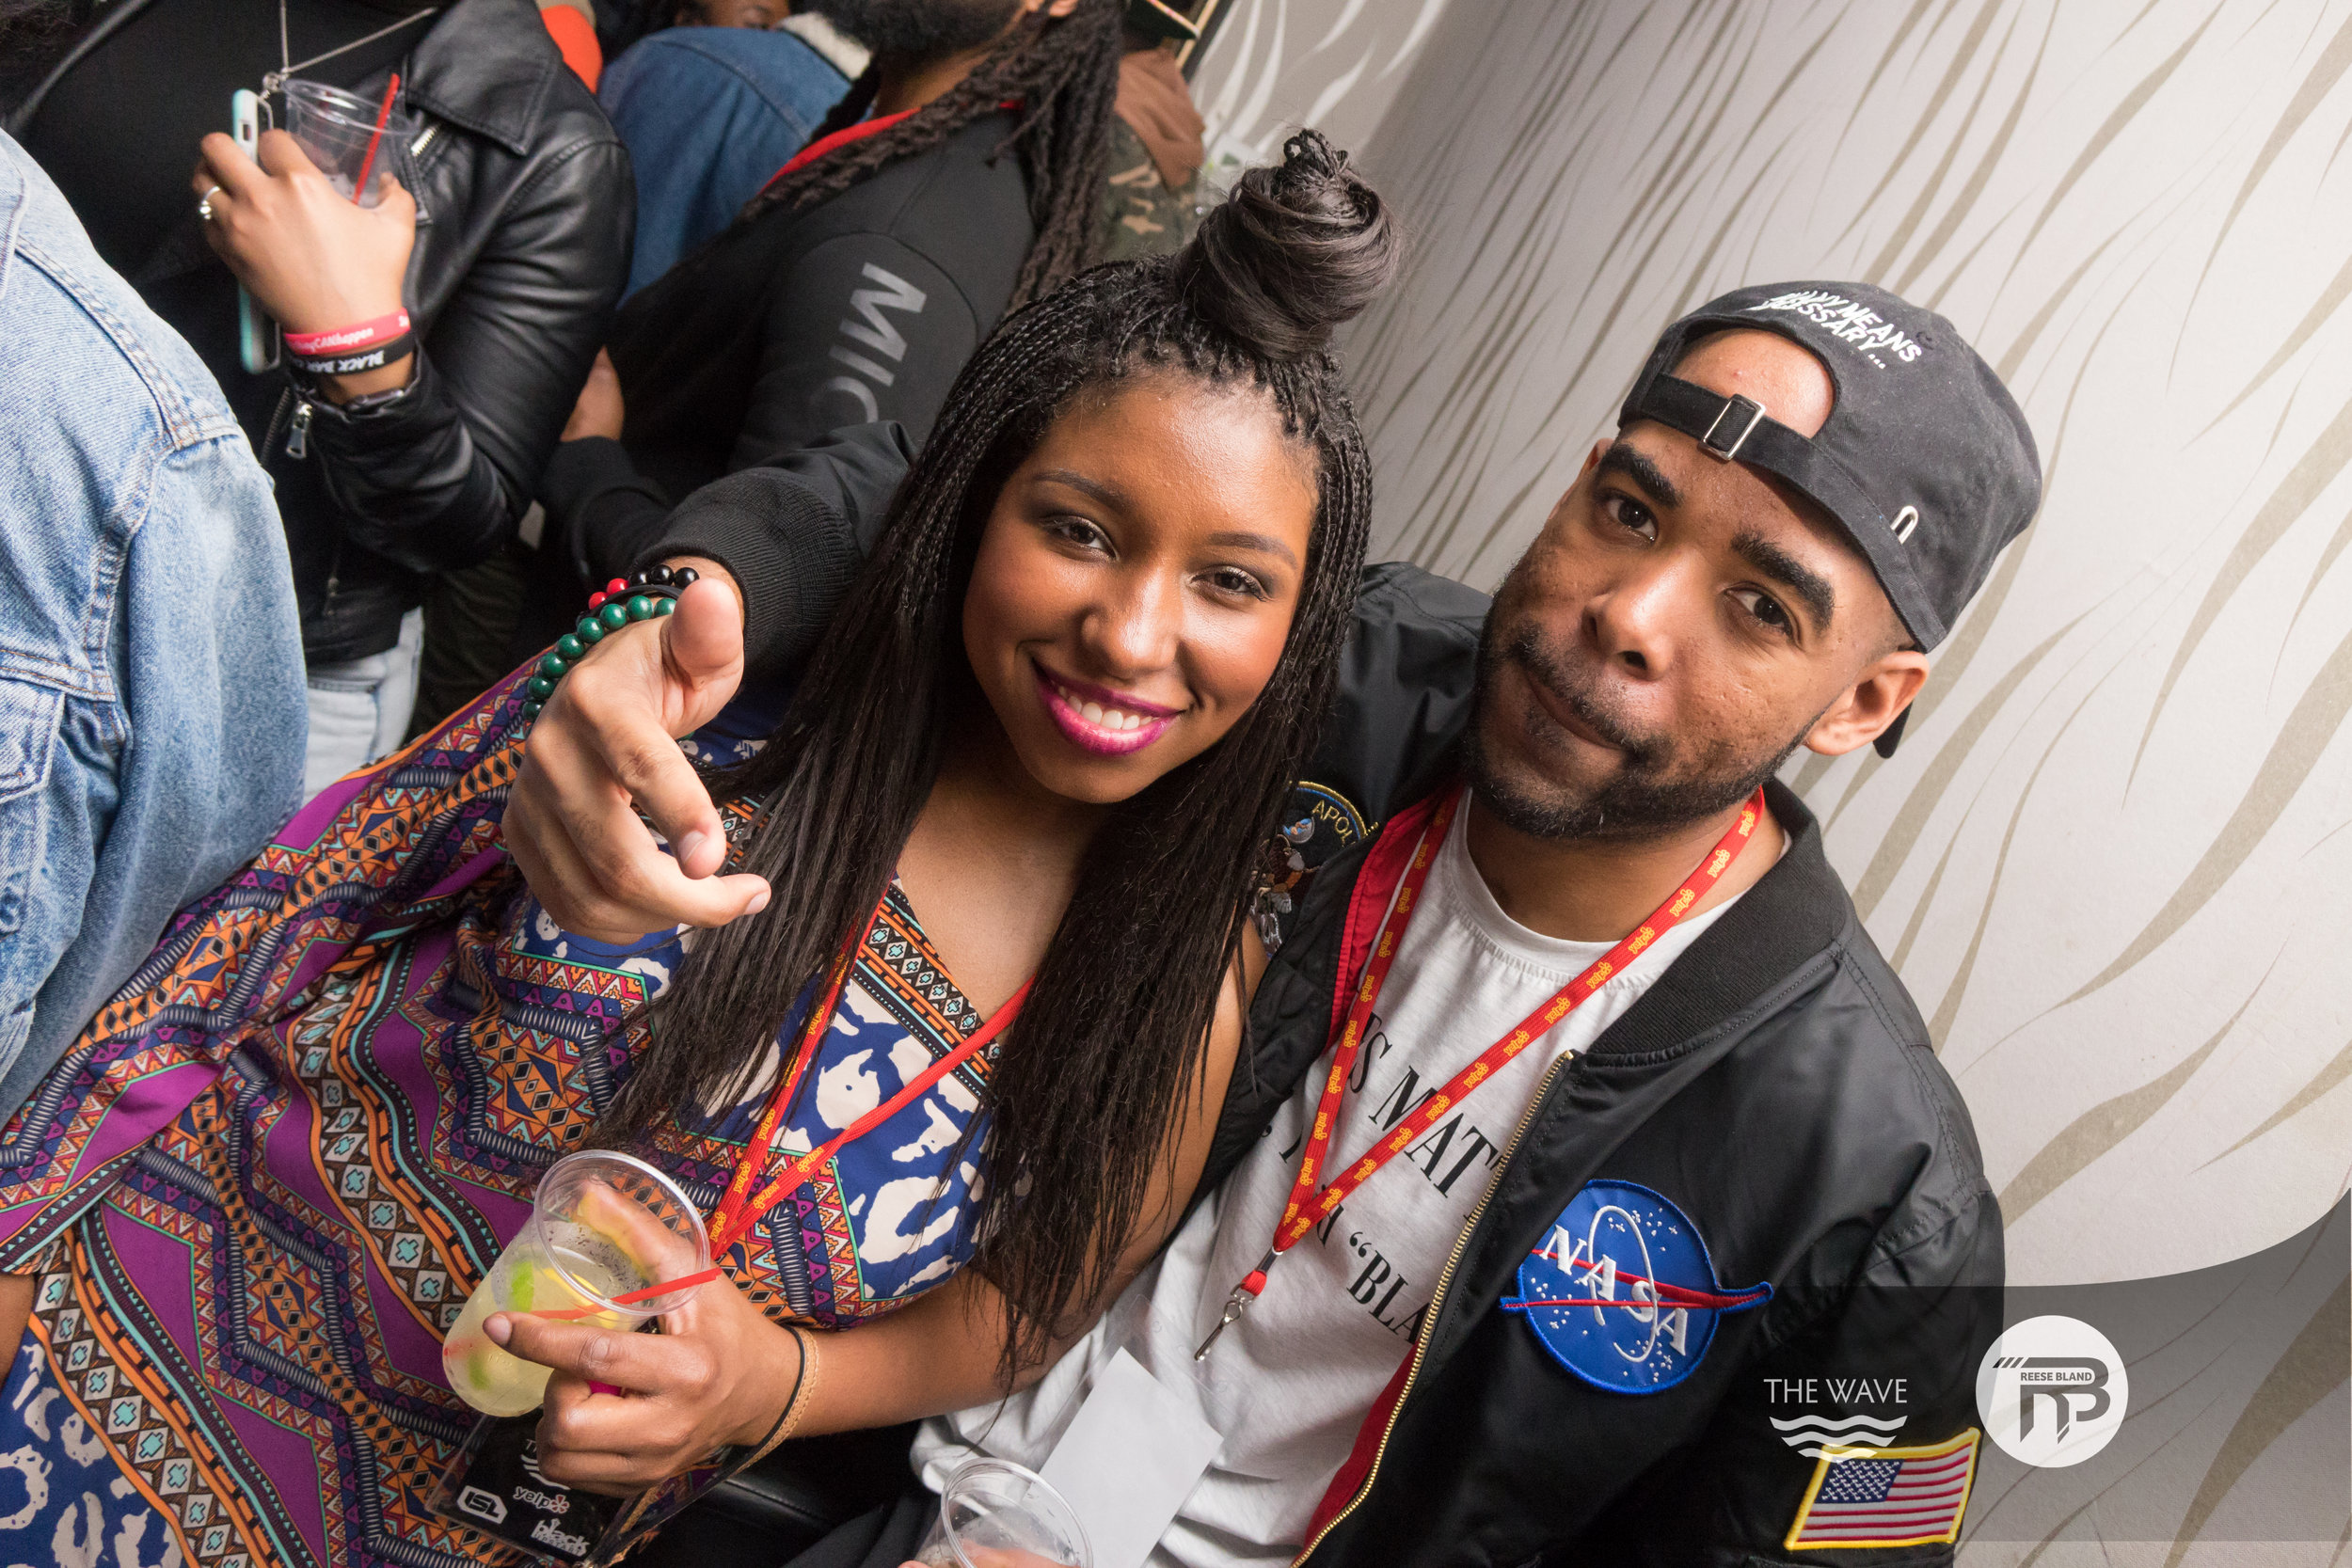 WaveDC-BlackBarCrawl-2-2018-06939.jpg